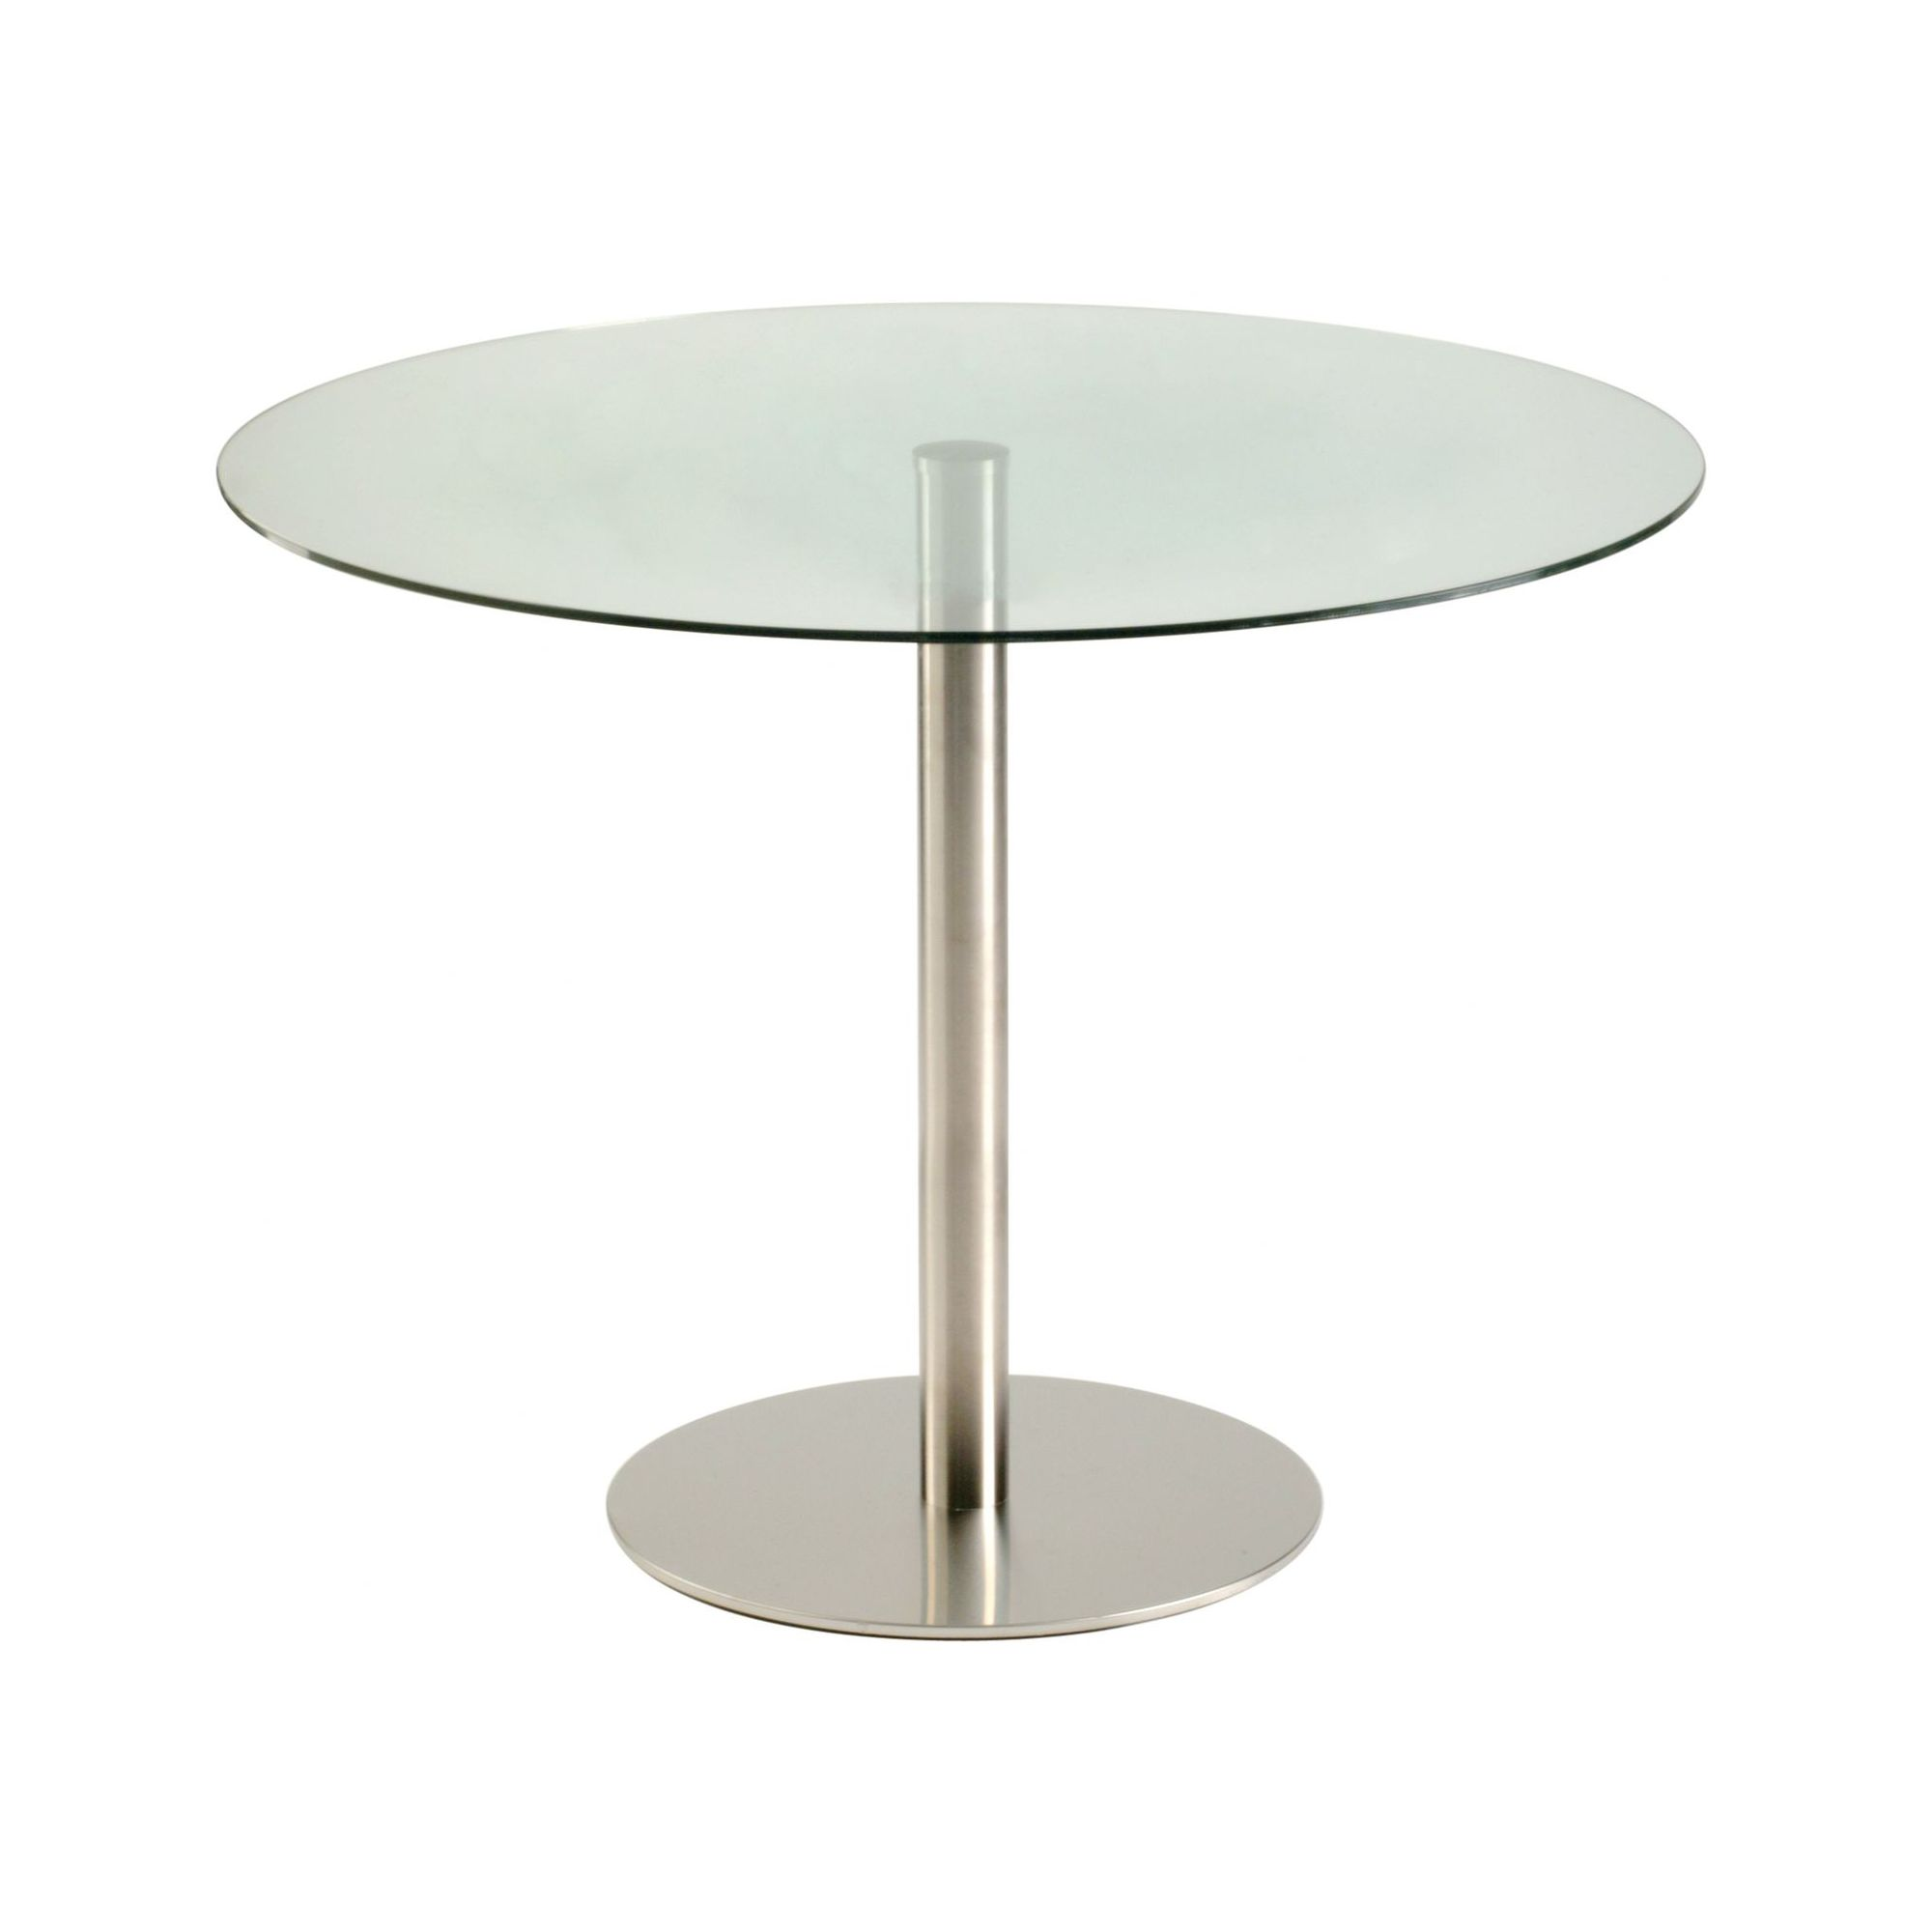 round kitchen casual dining table 60 cm clear glass features round